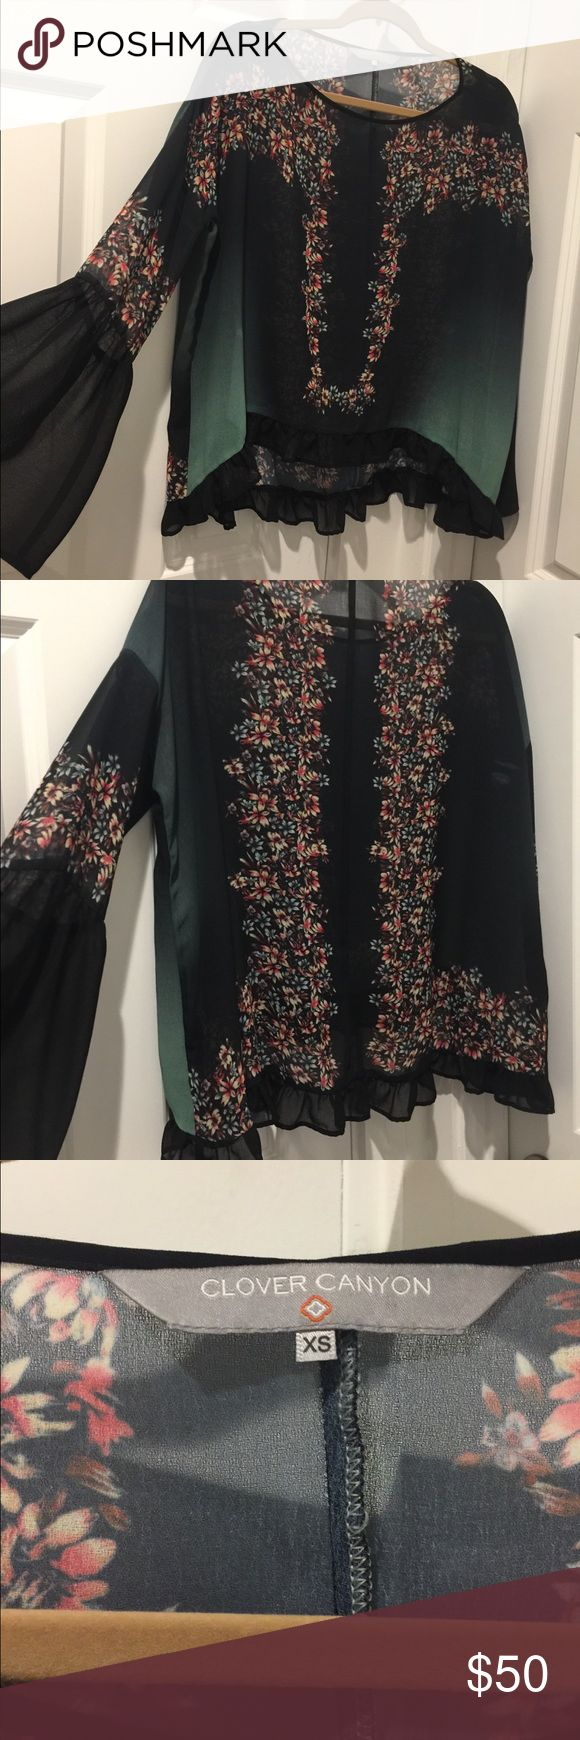 Clover Canyon Ruffle Top Chiffon Clover Canyon top with ruffle hem and bell sleeves. Loose, drapey fit. Size XS. 100% polyester. Good condition. Clover Canyon Tops Blouses